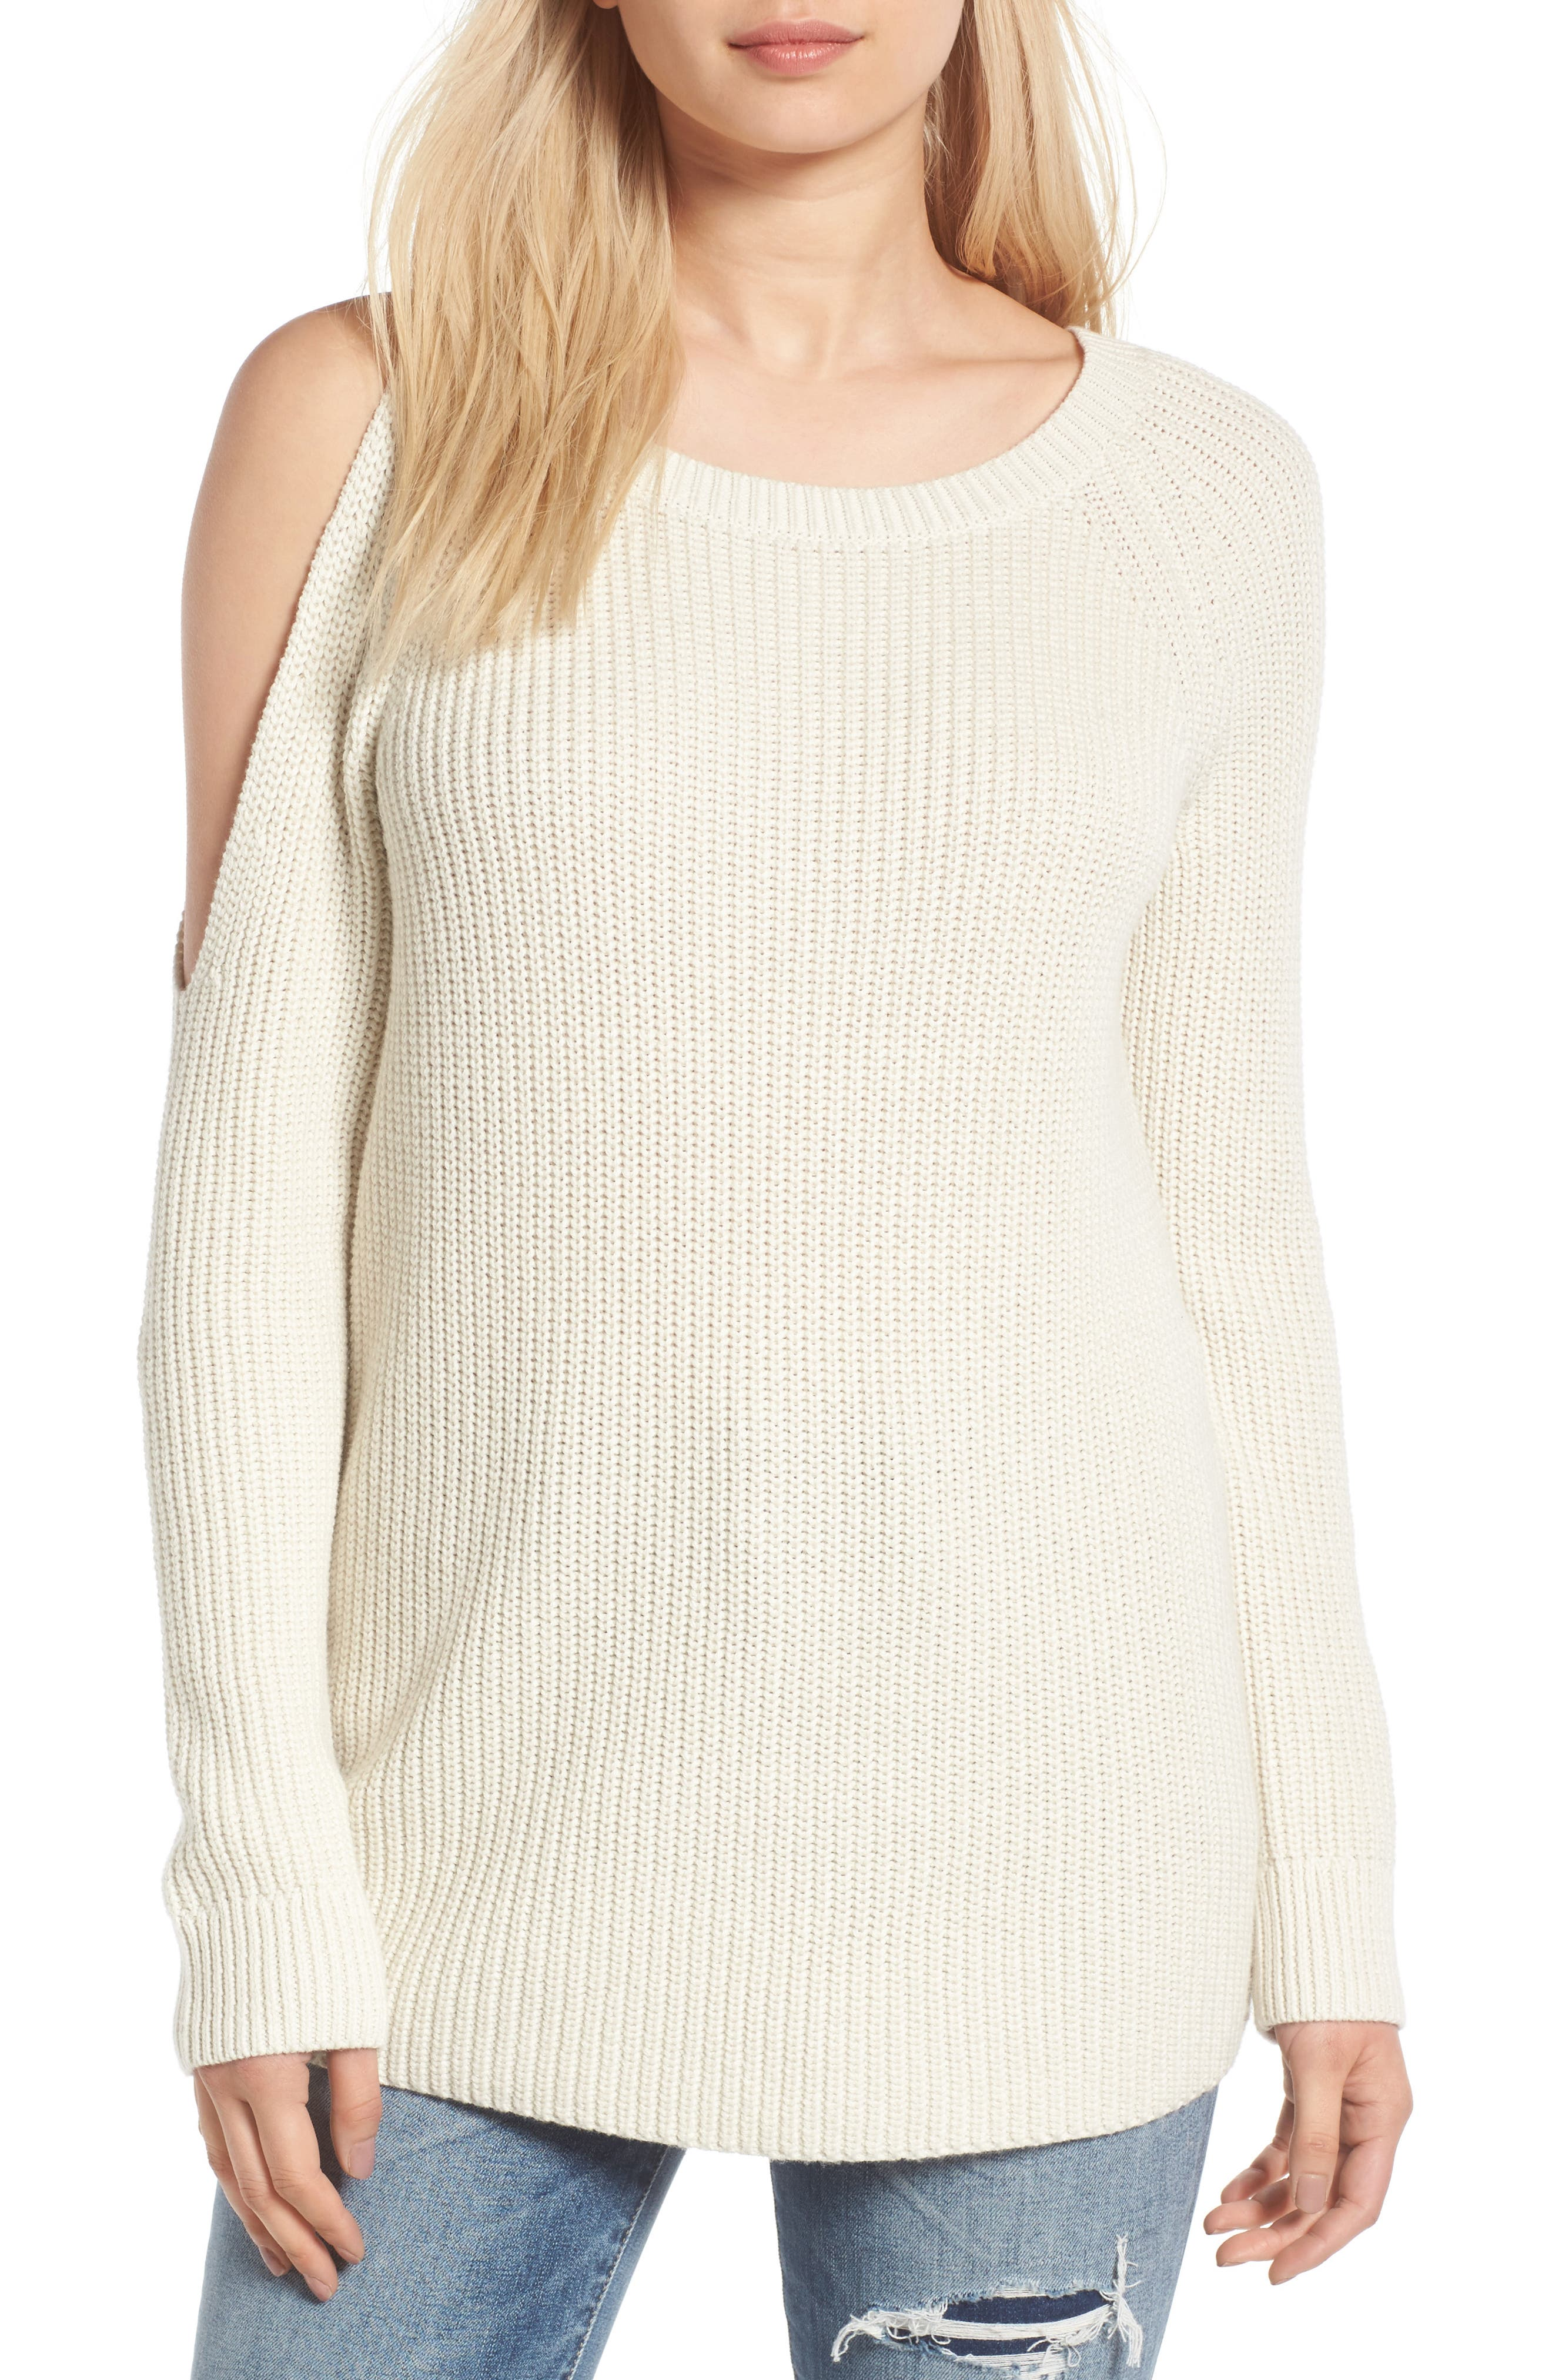 TREASURE & BOND Asymmetrical Cold Shoulder Sweater